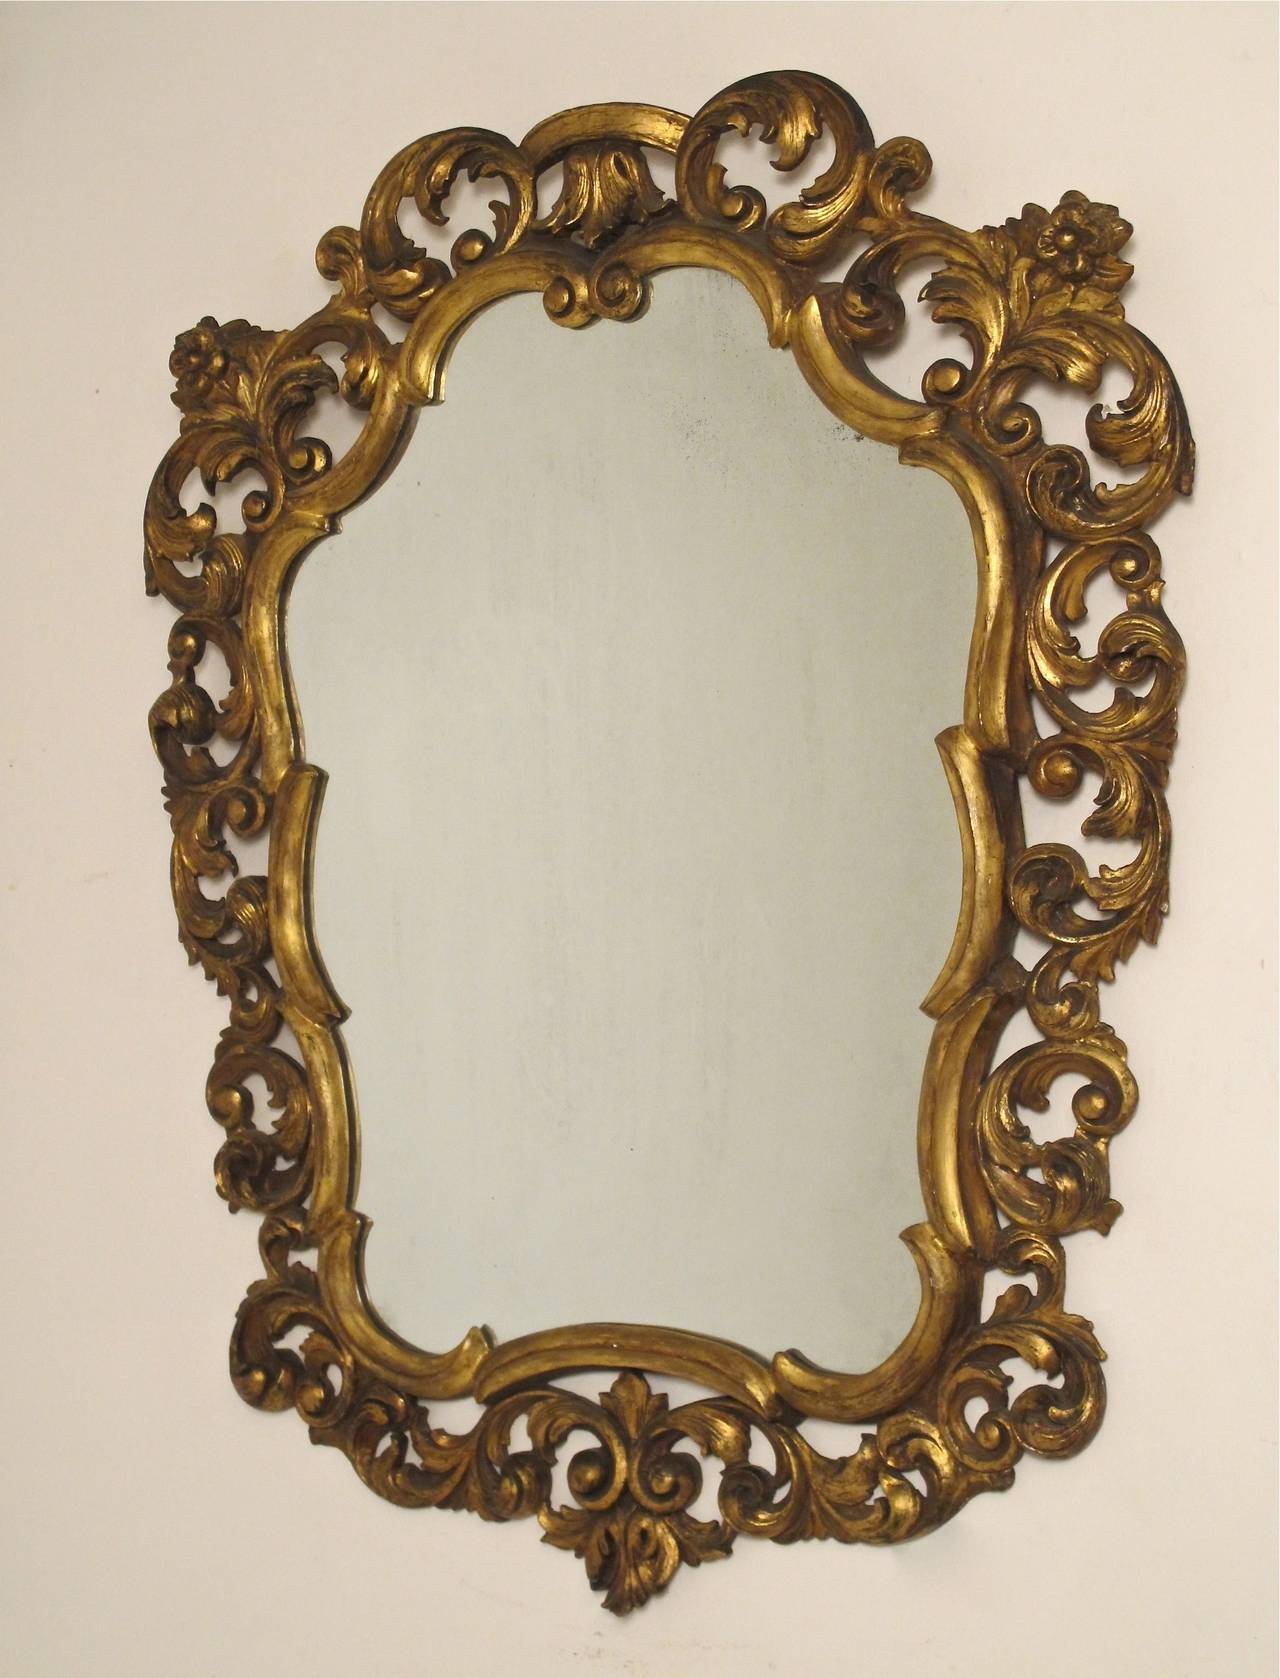 Shapely carved giltwood framed mirror by Fratelli Paoletti with C scroll and floral design. Italian, circa 1950.